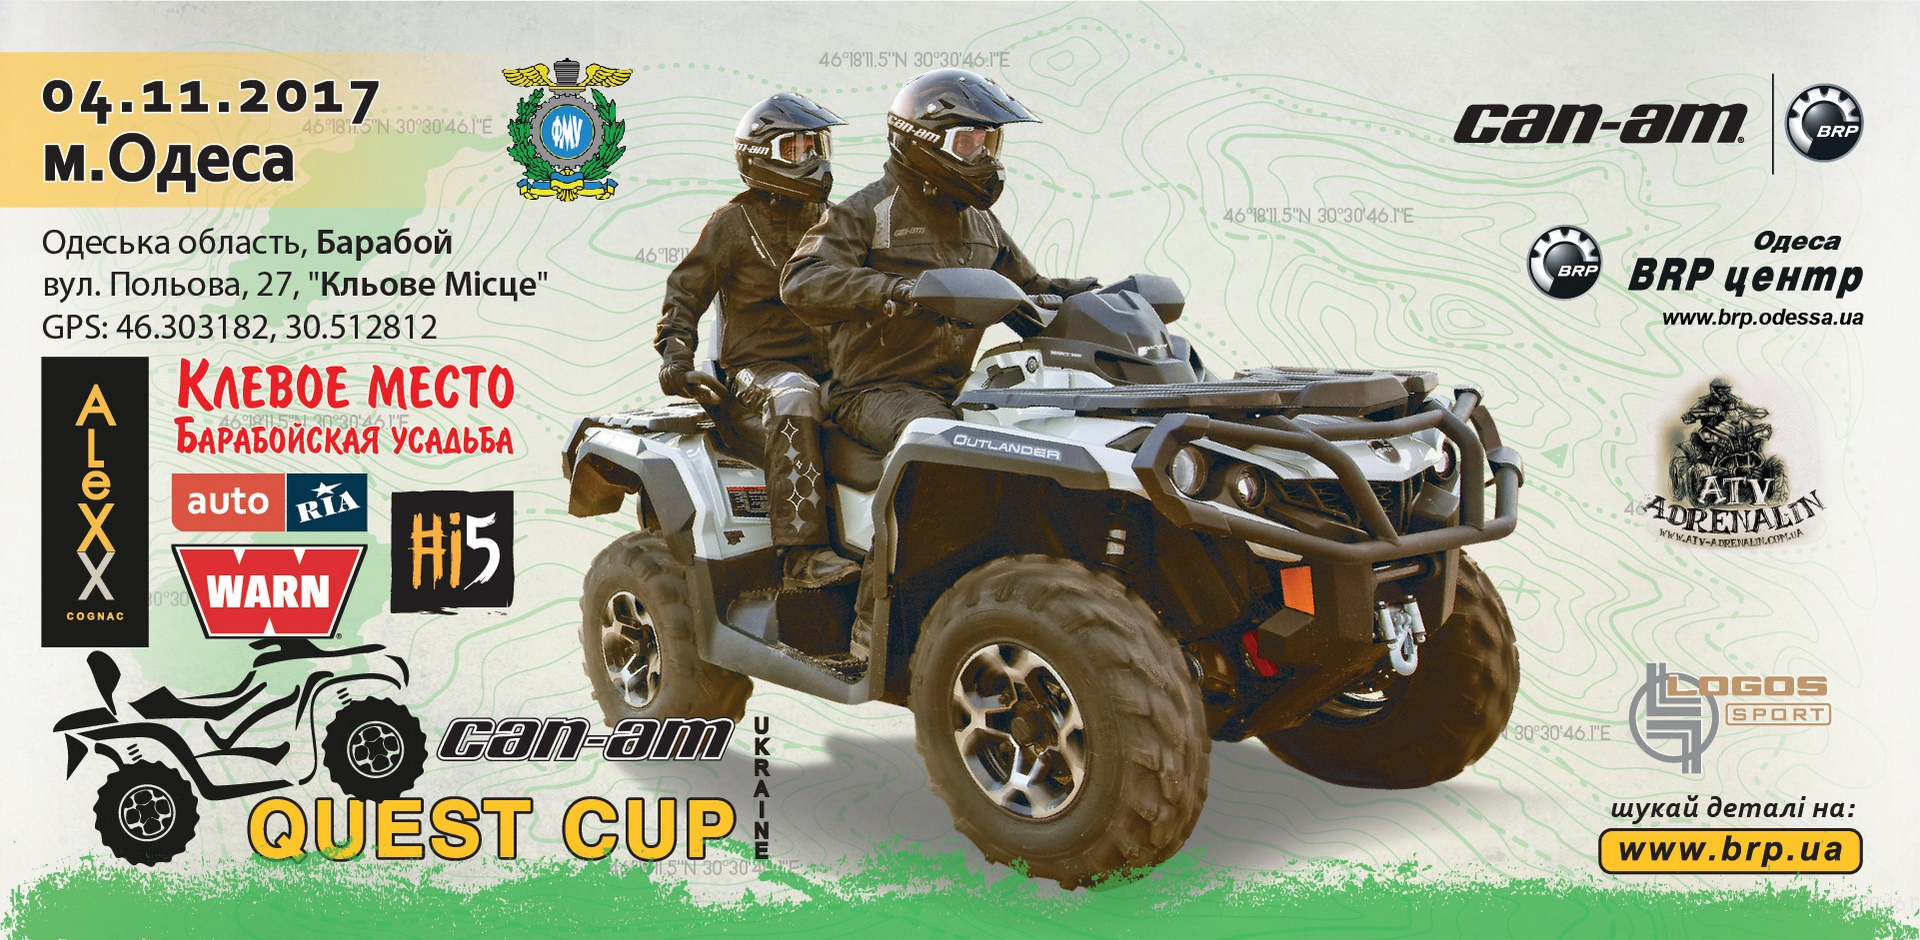 04/11 – 9-й этап серии «CAN-AM QUEST CUP»! Одесса.